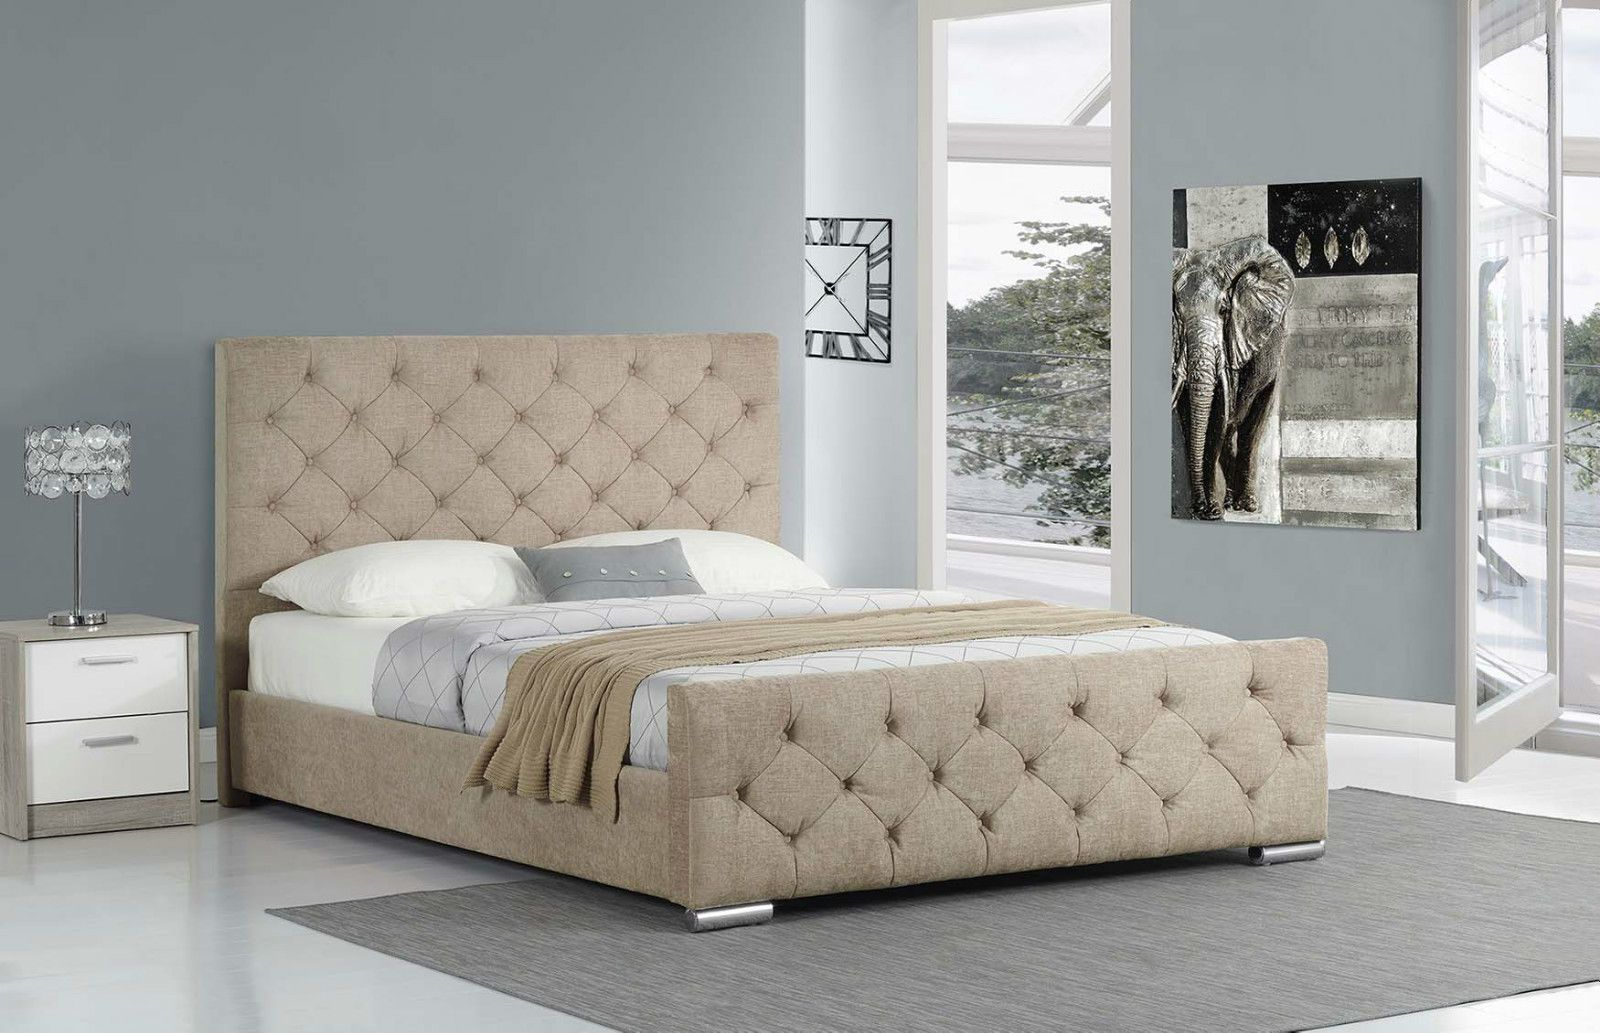 New Upholstered Fabric Bed Frame Double King Size   Silver Grey Mink Light  Brown